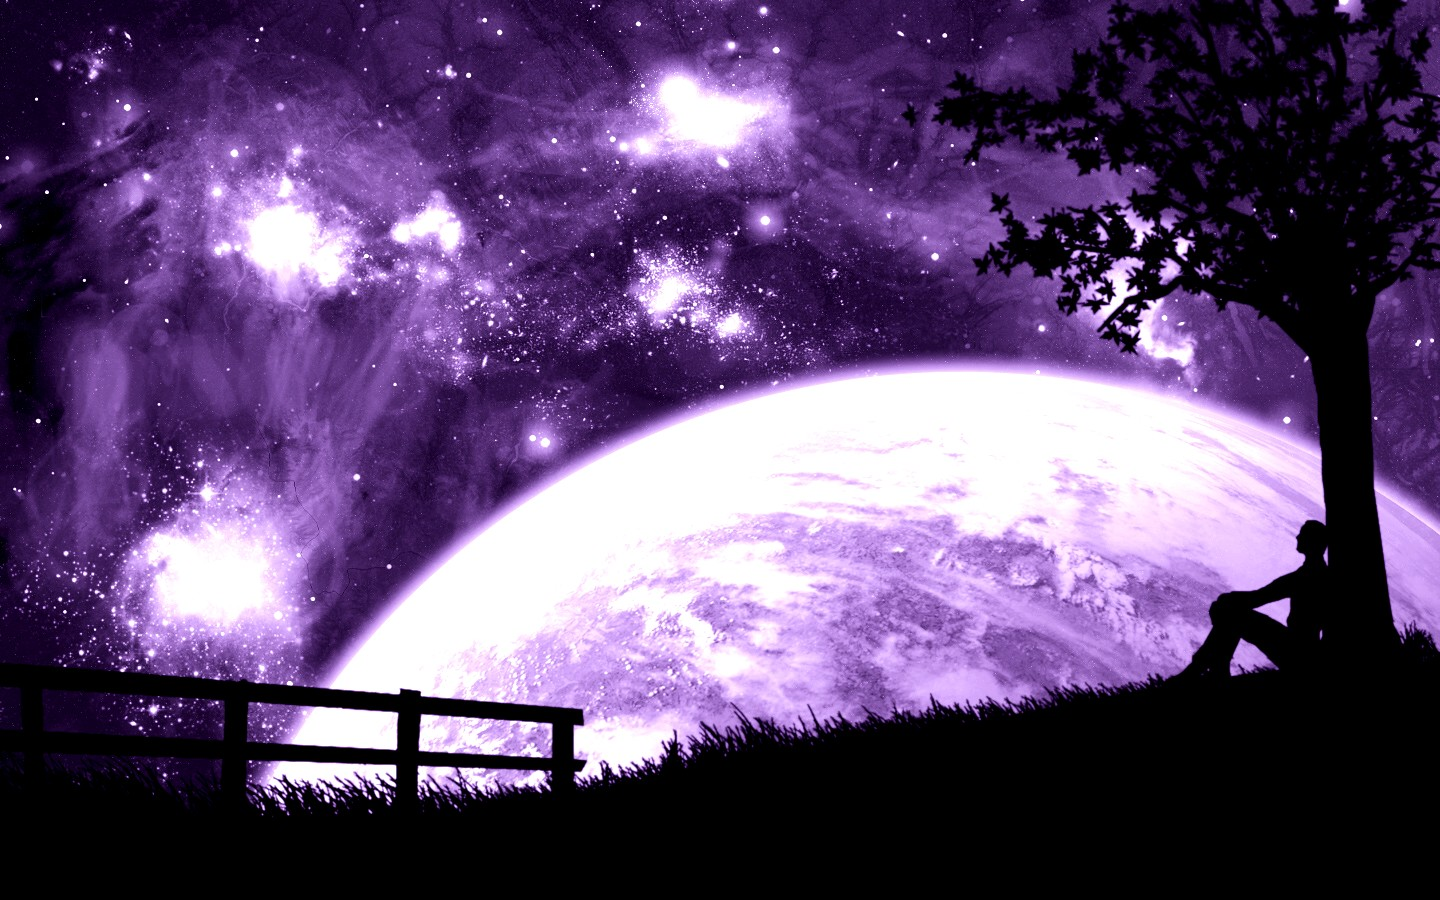 My cool wallpapers purpleblack wallpaper 1440x900